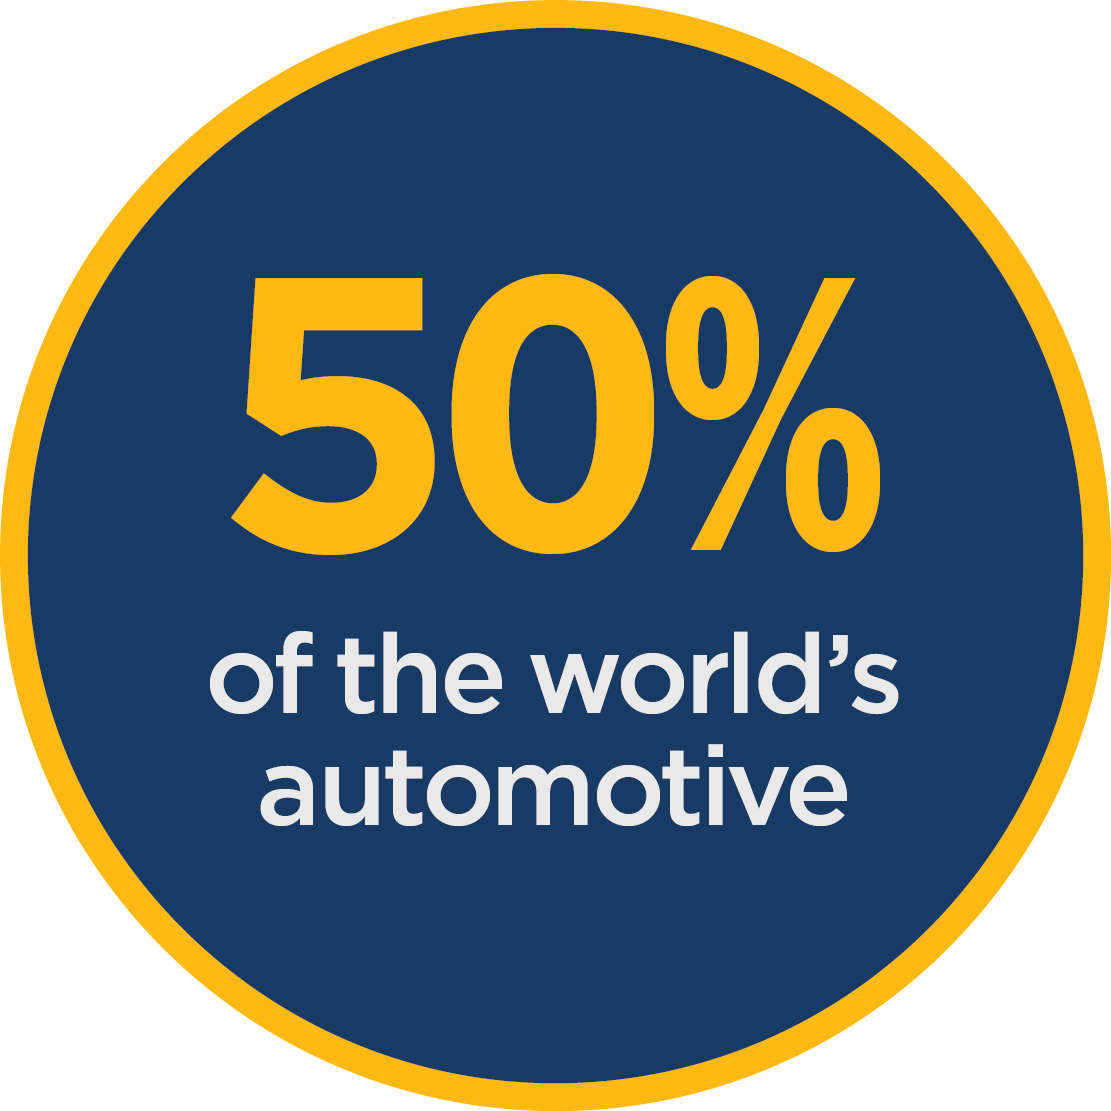 50% of the world's automotive